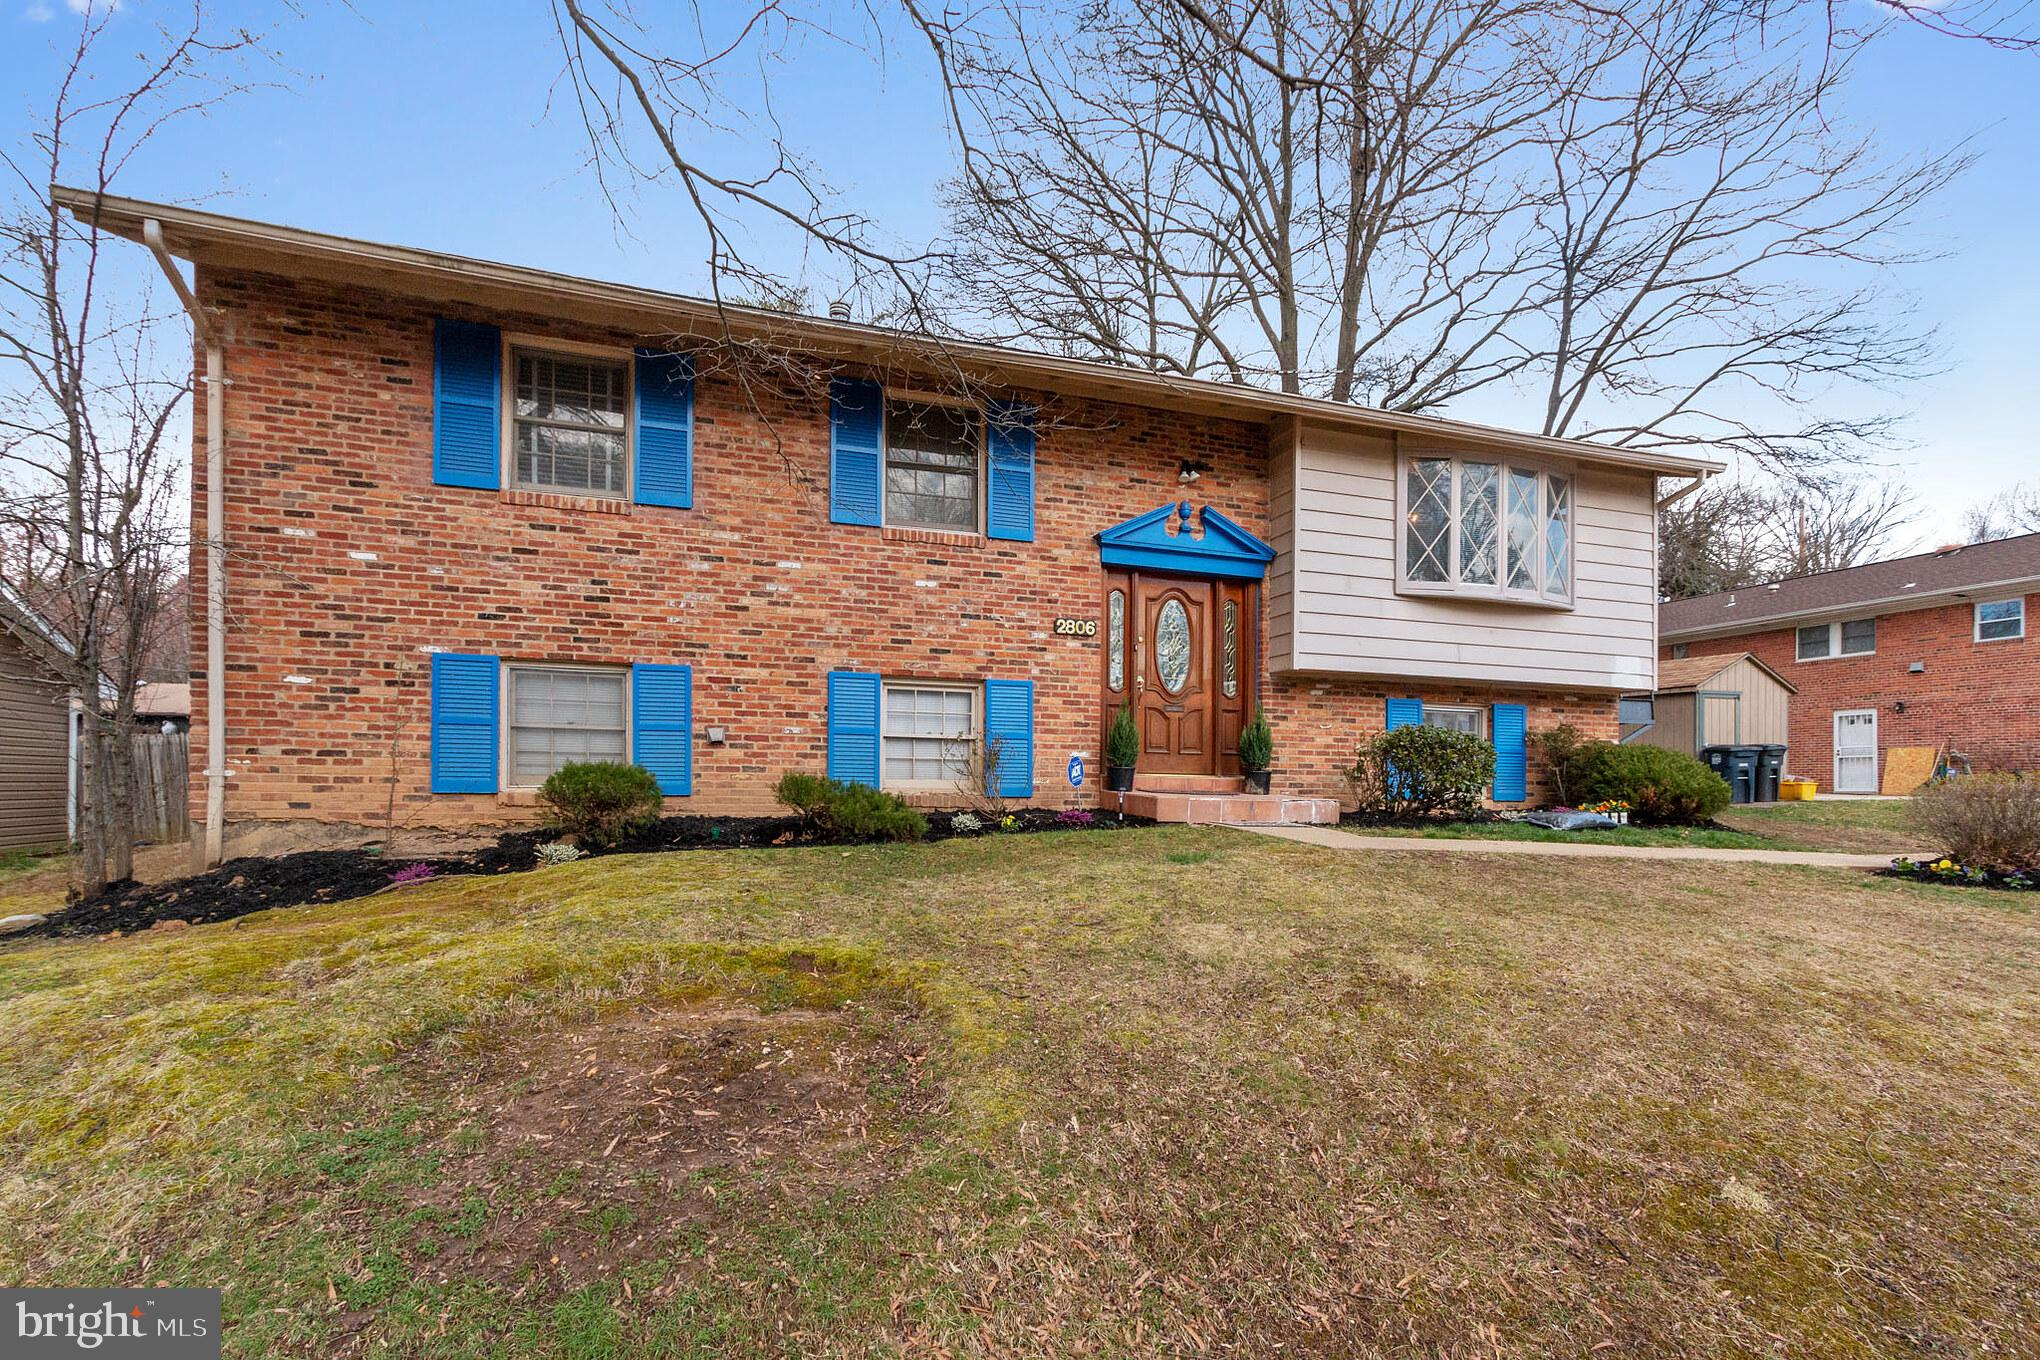 2806 CURRY DRIVE, ADELPHI, MD 20783